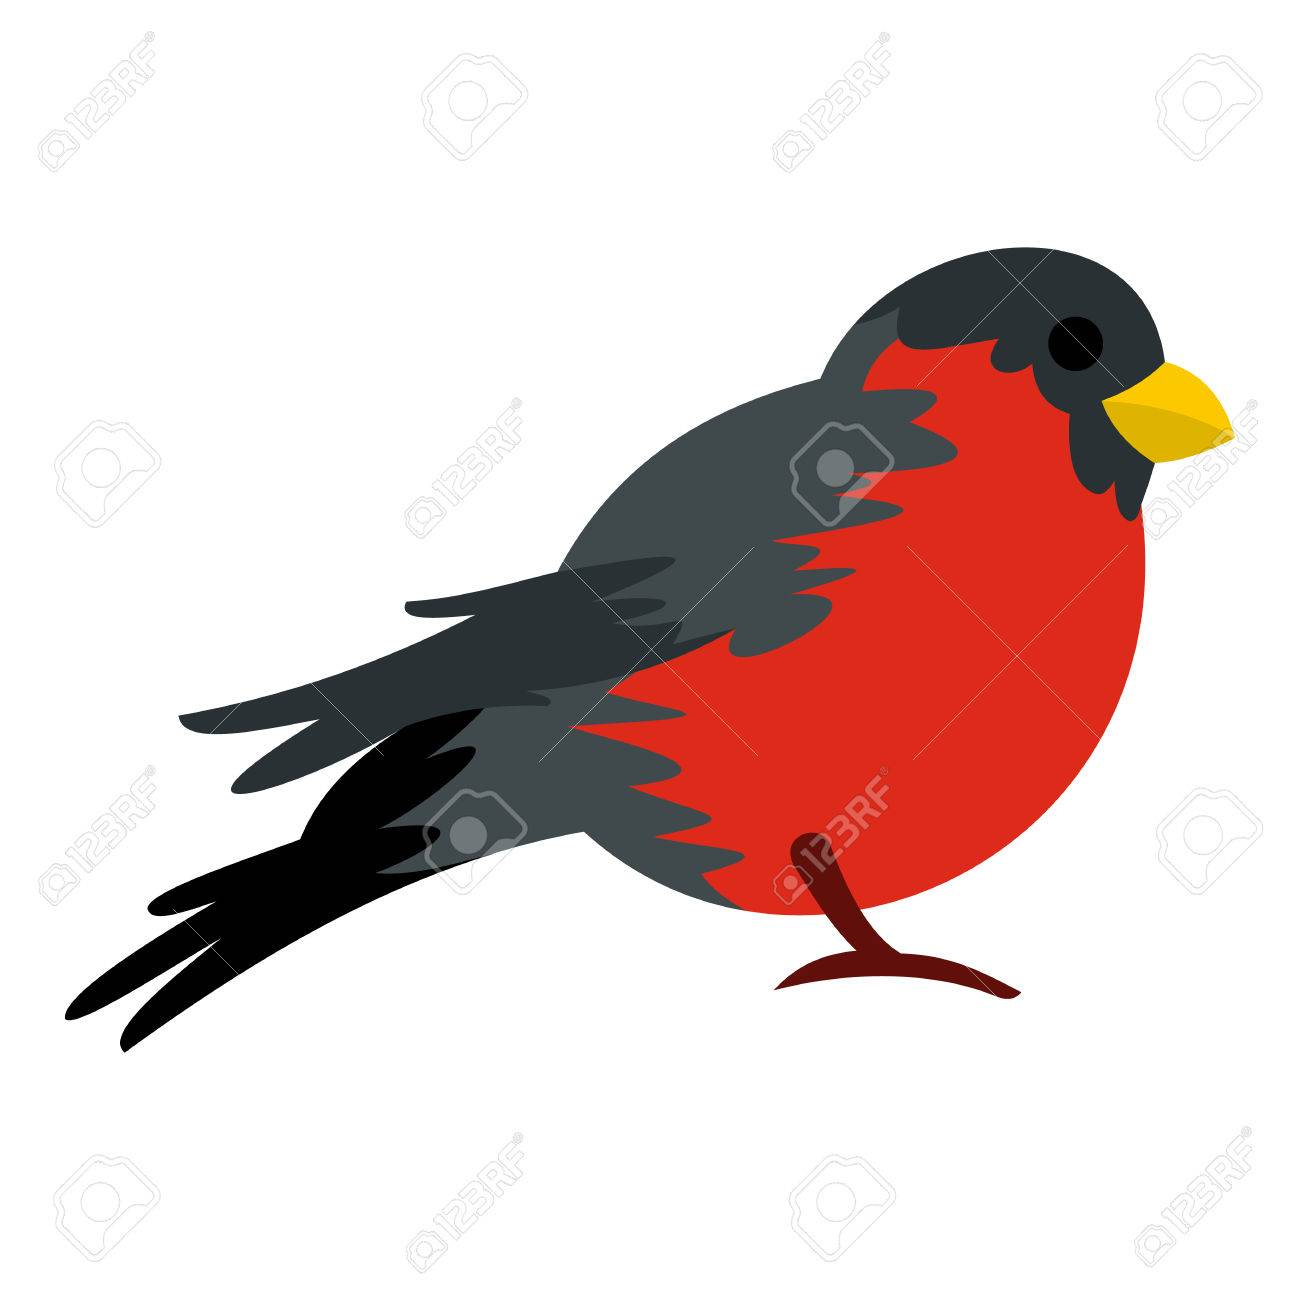 Bird with red plumage icon in flat style isolated on white bird with red plumage icon in flat style isolated on white background fly symbol vector buycottarizona Gallery